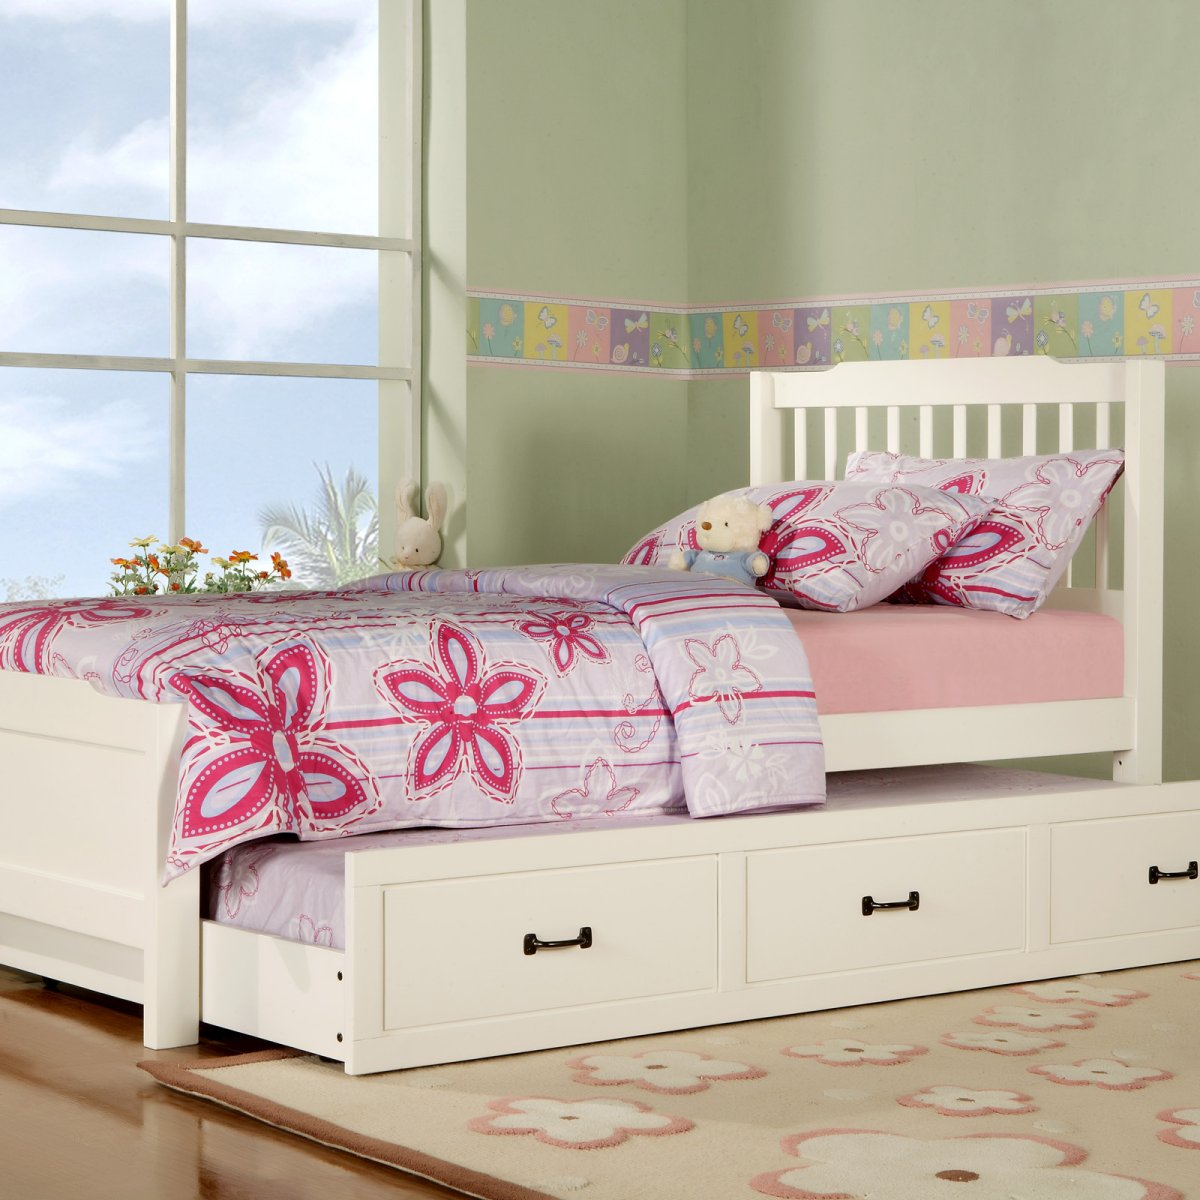 Trundle beds for children homesfeed for Recamaras individuales dico